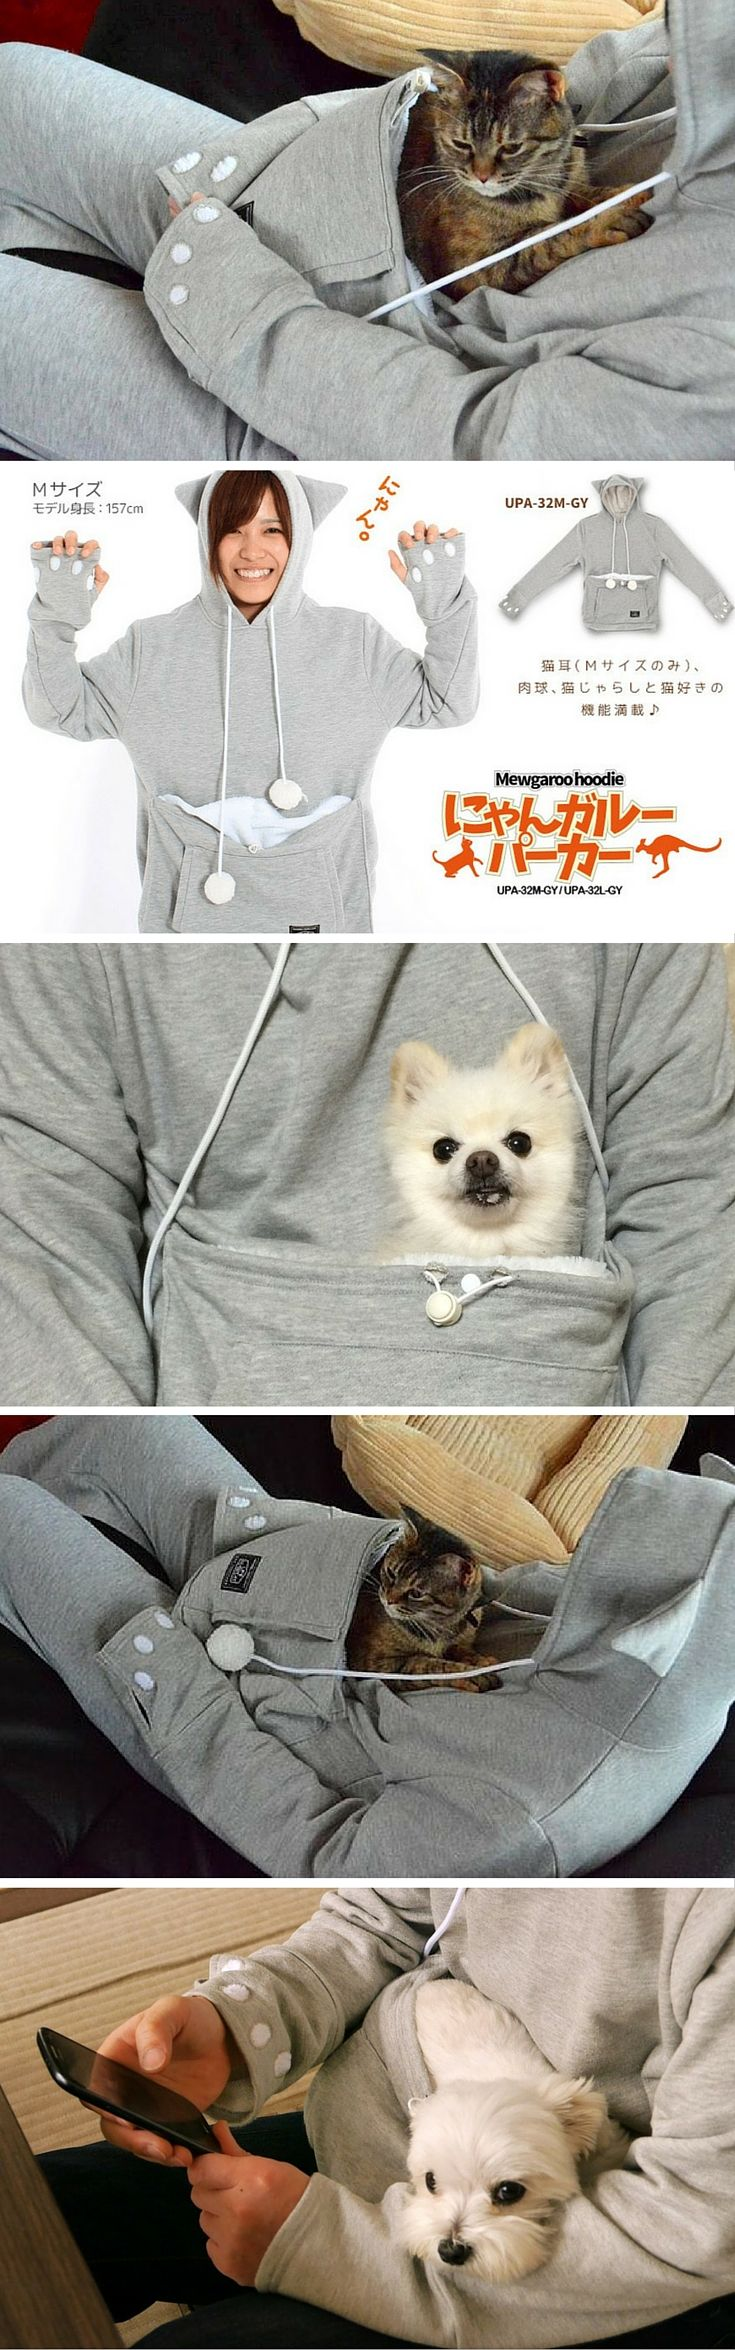 """This is called the Mewgaroo Hoodie, a sweatshirt featuring a specially-designed pouch precisely for keeping dogs, cats or other small pets feeling cozy, safe and close at hand (the """"petting"""" one)."""